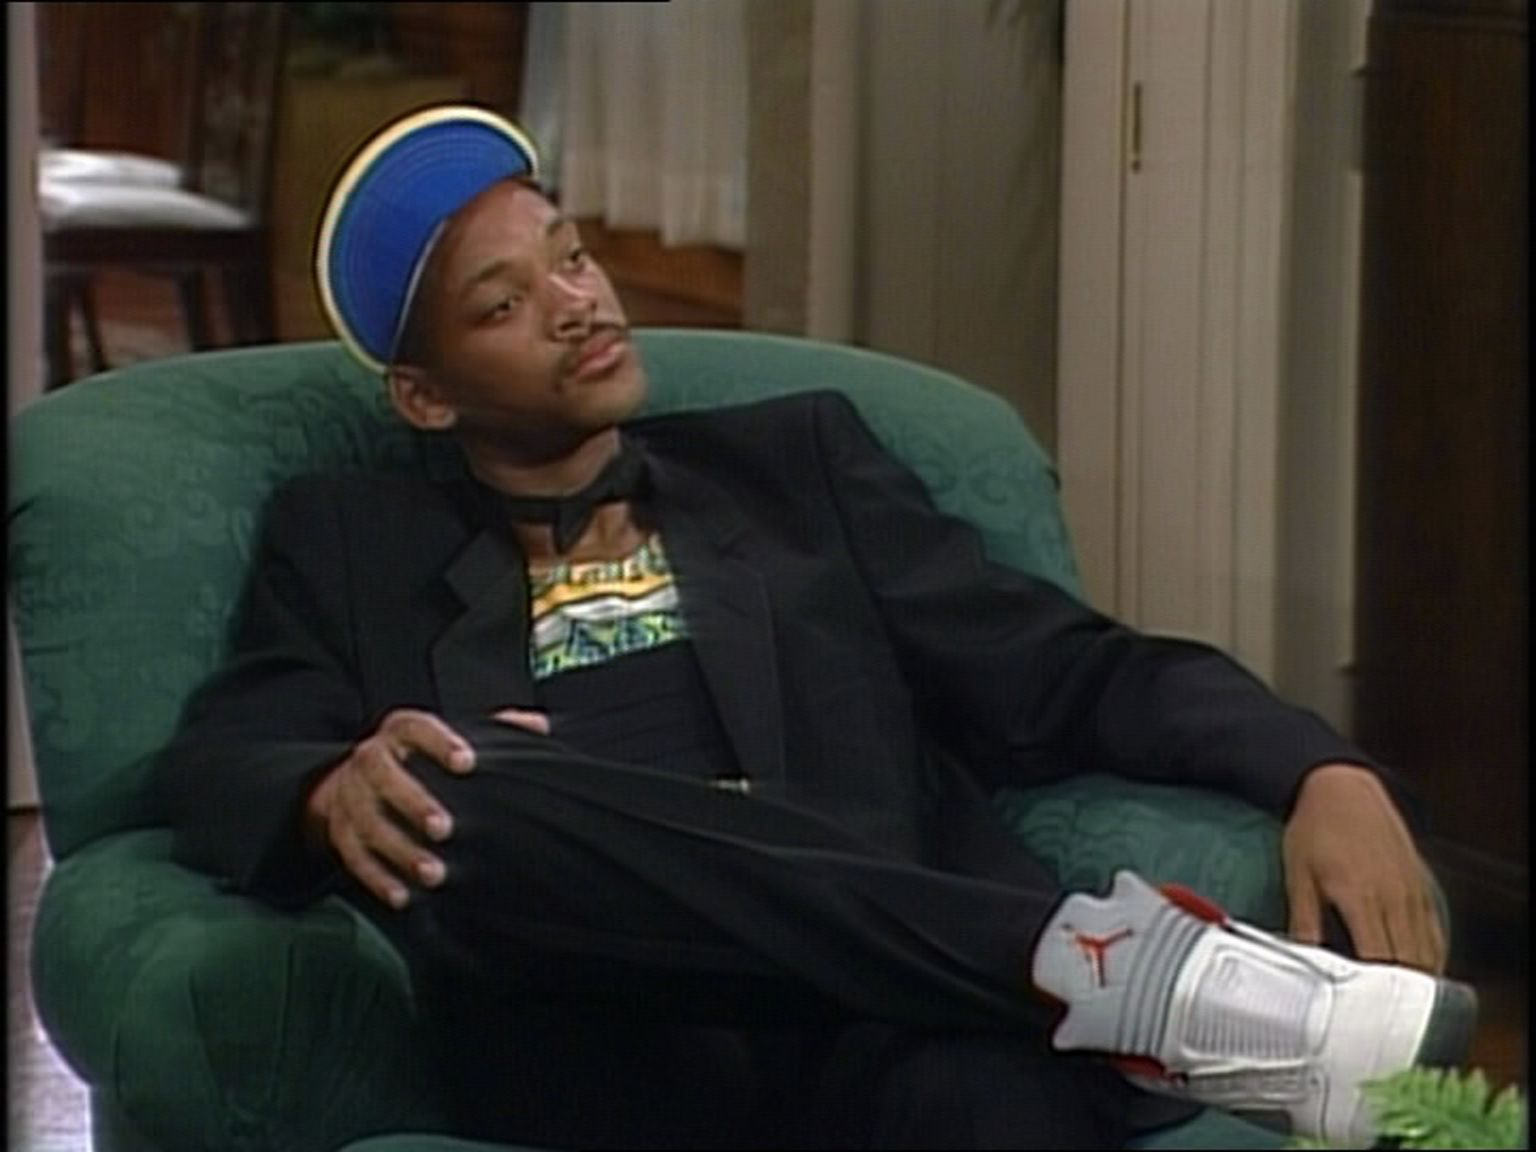 The-Fresh-Prince-of-Bel-Air-1x01-The-Fre